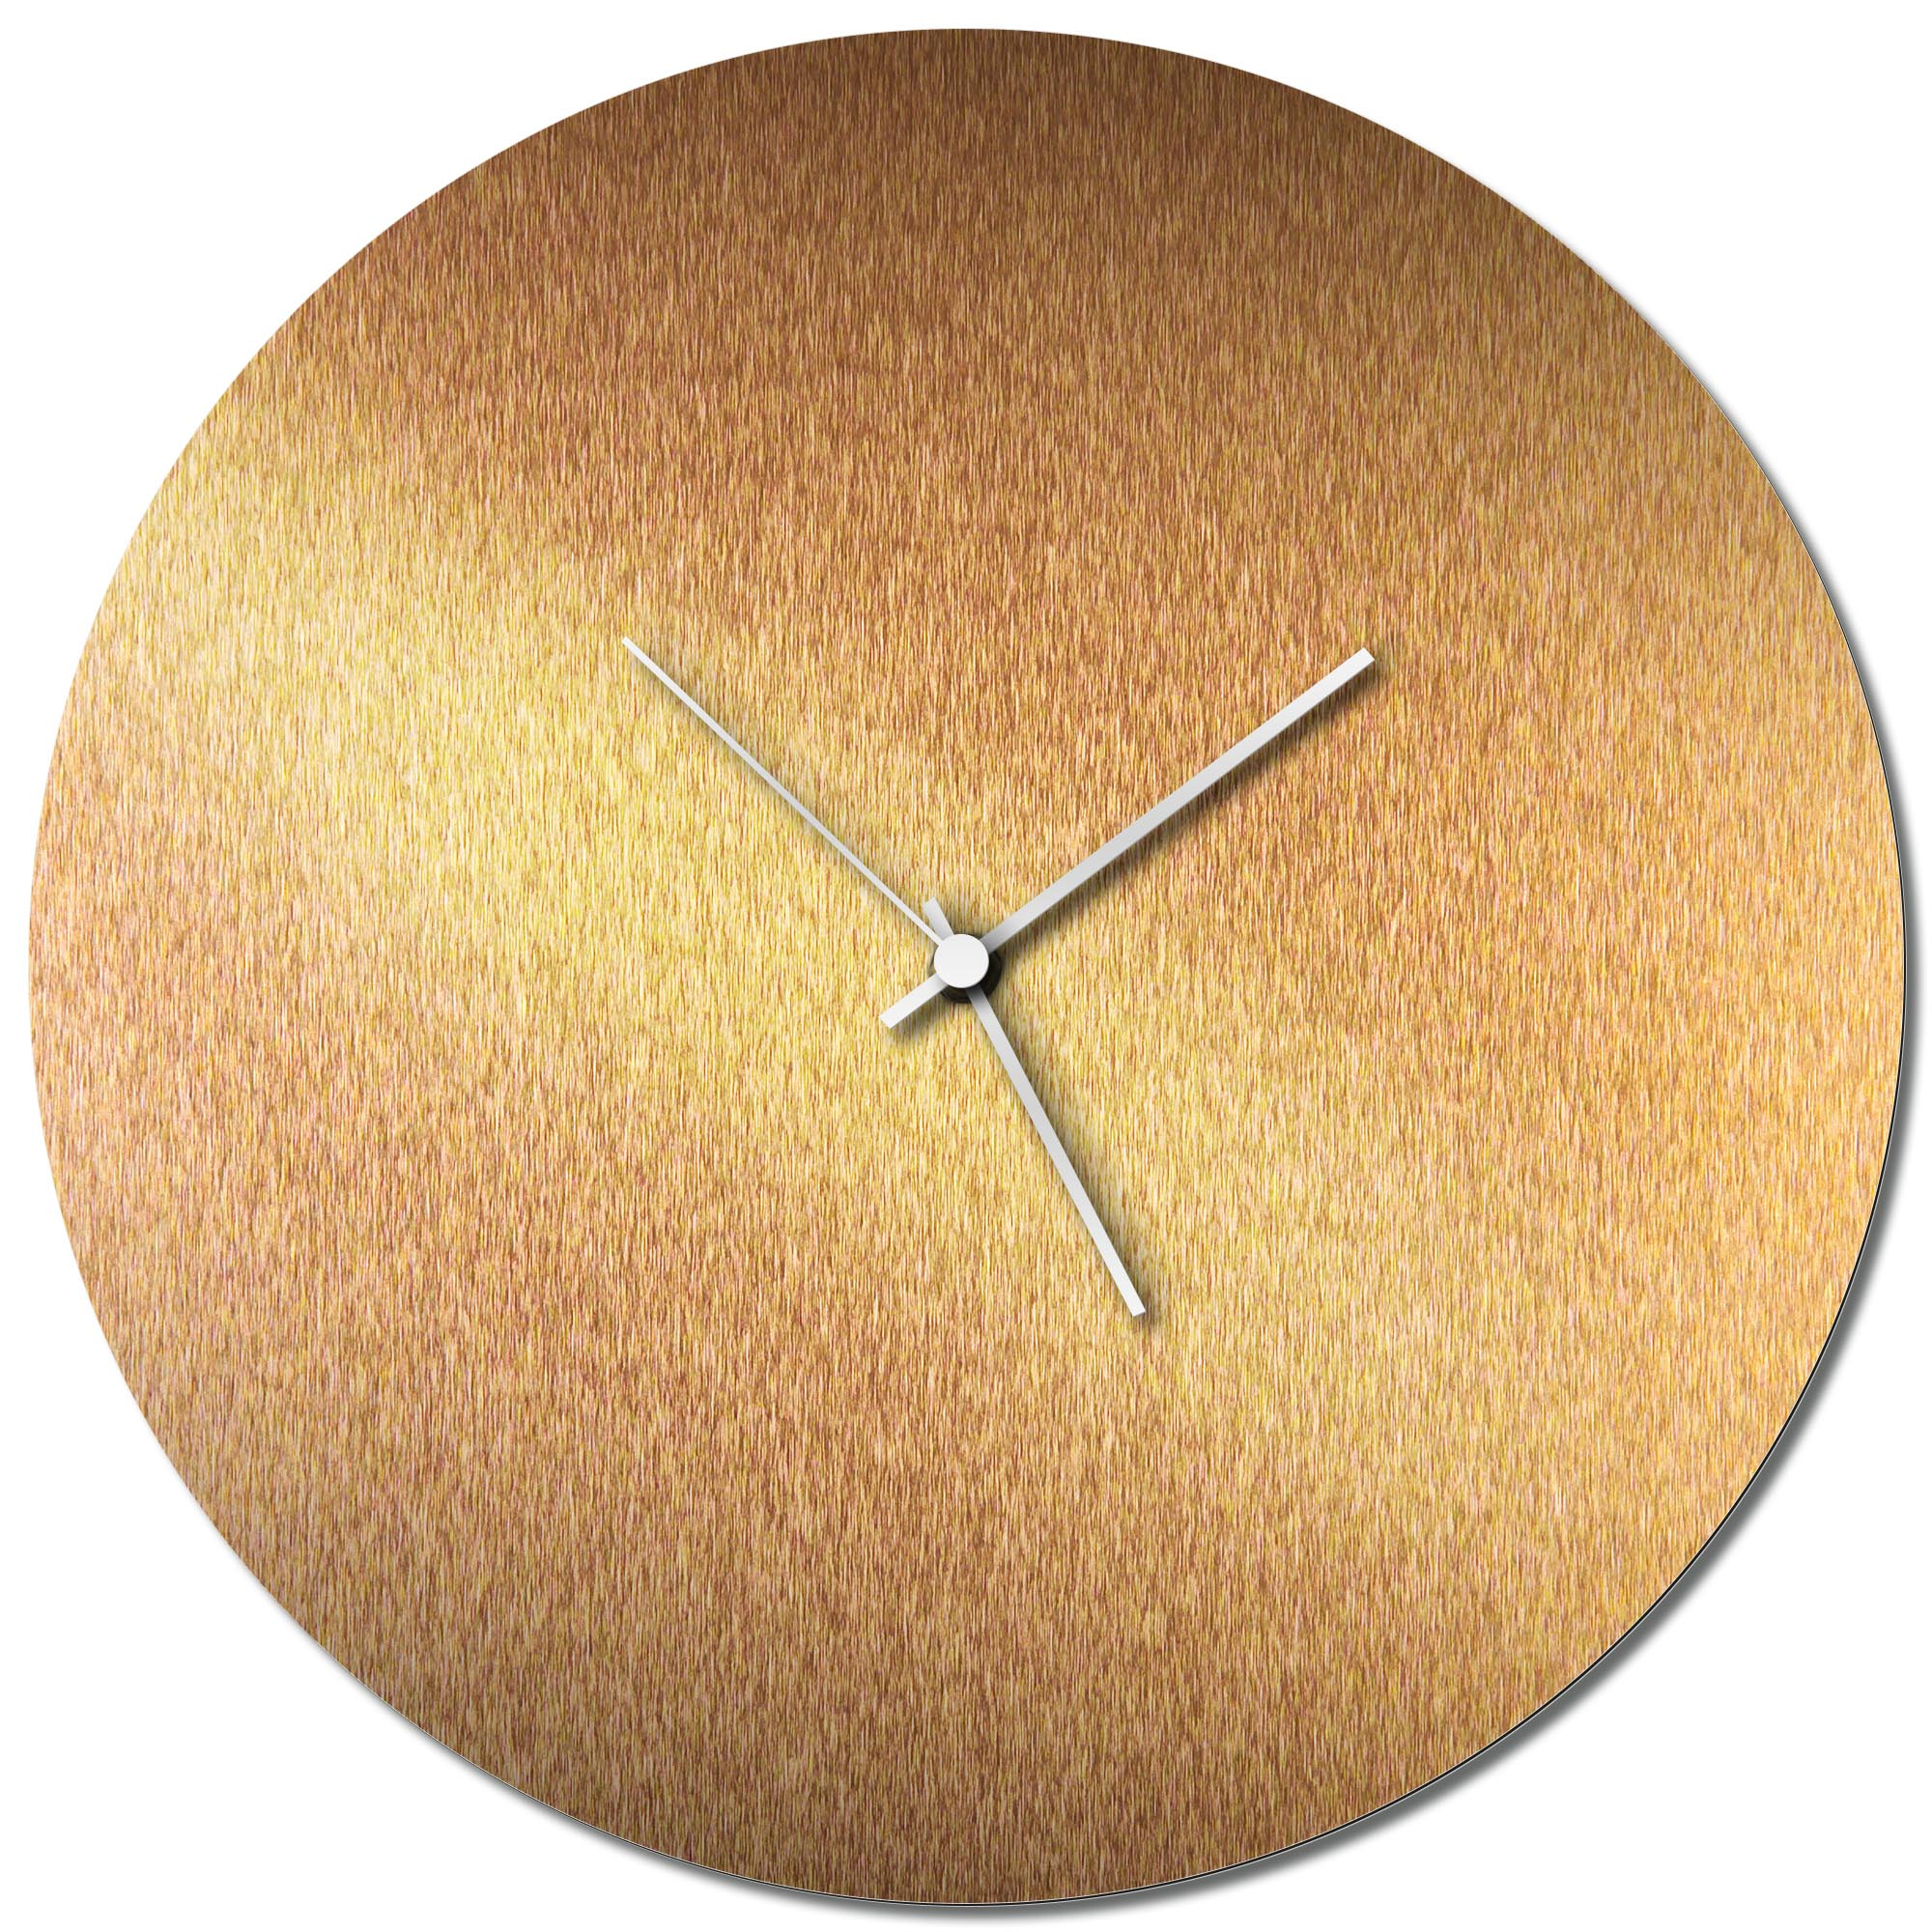 Adam Schwoeppe 'Bronzesmith Circle Clock White' Midcentury Modern Style Wall Clock